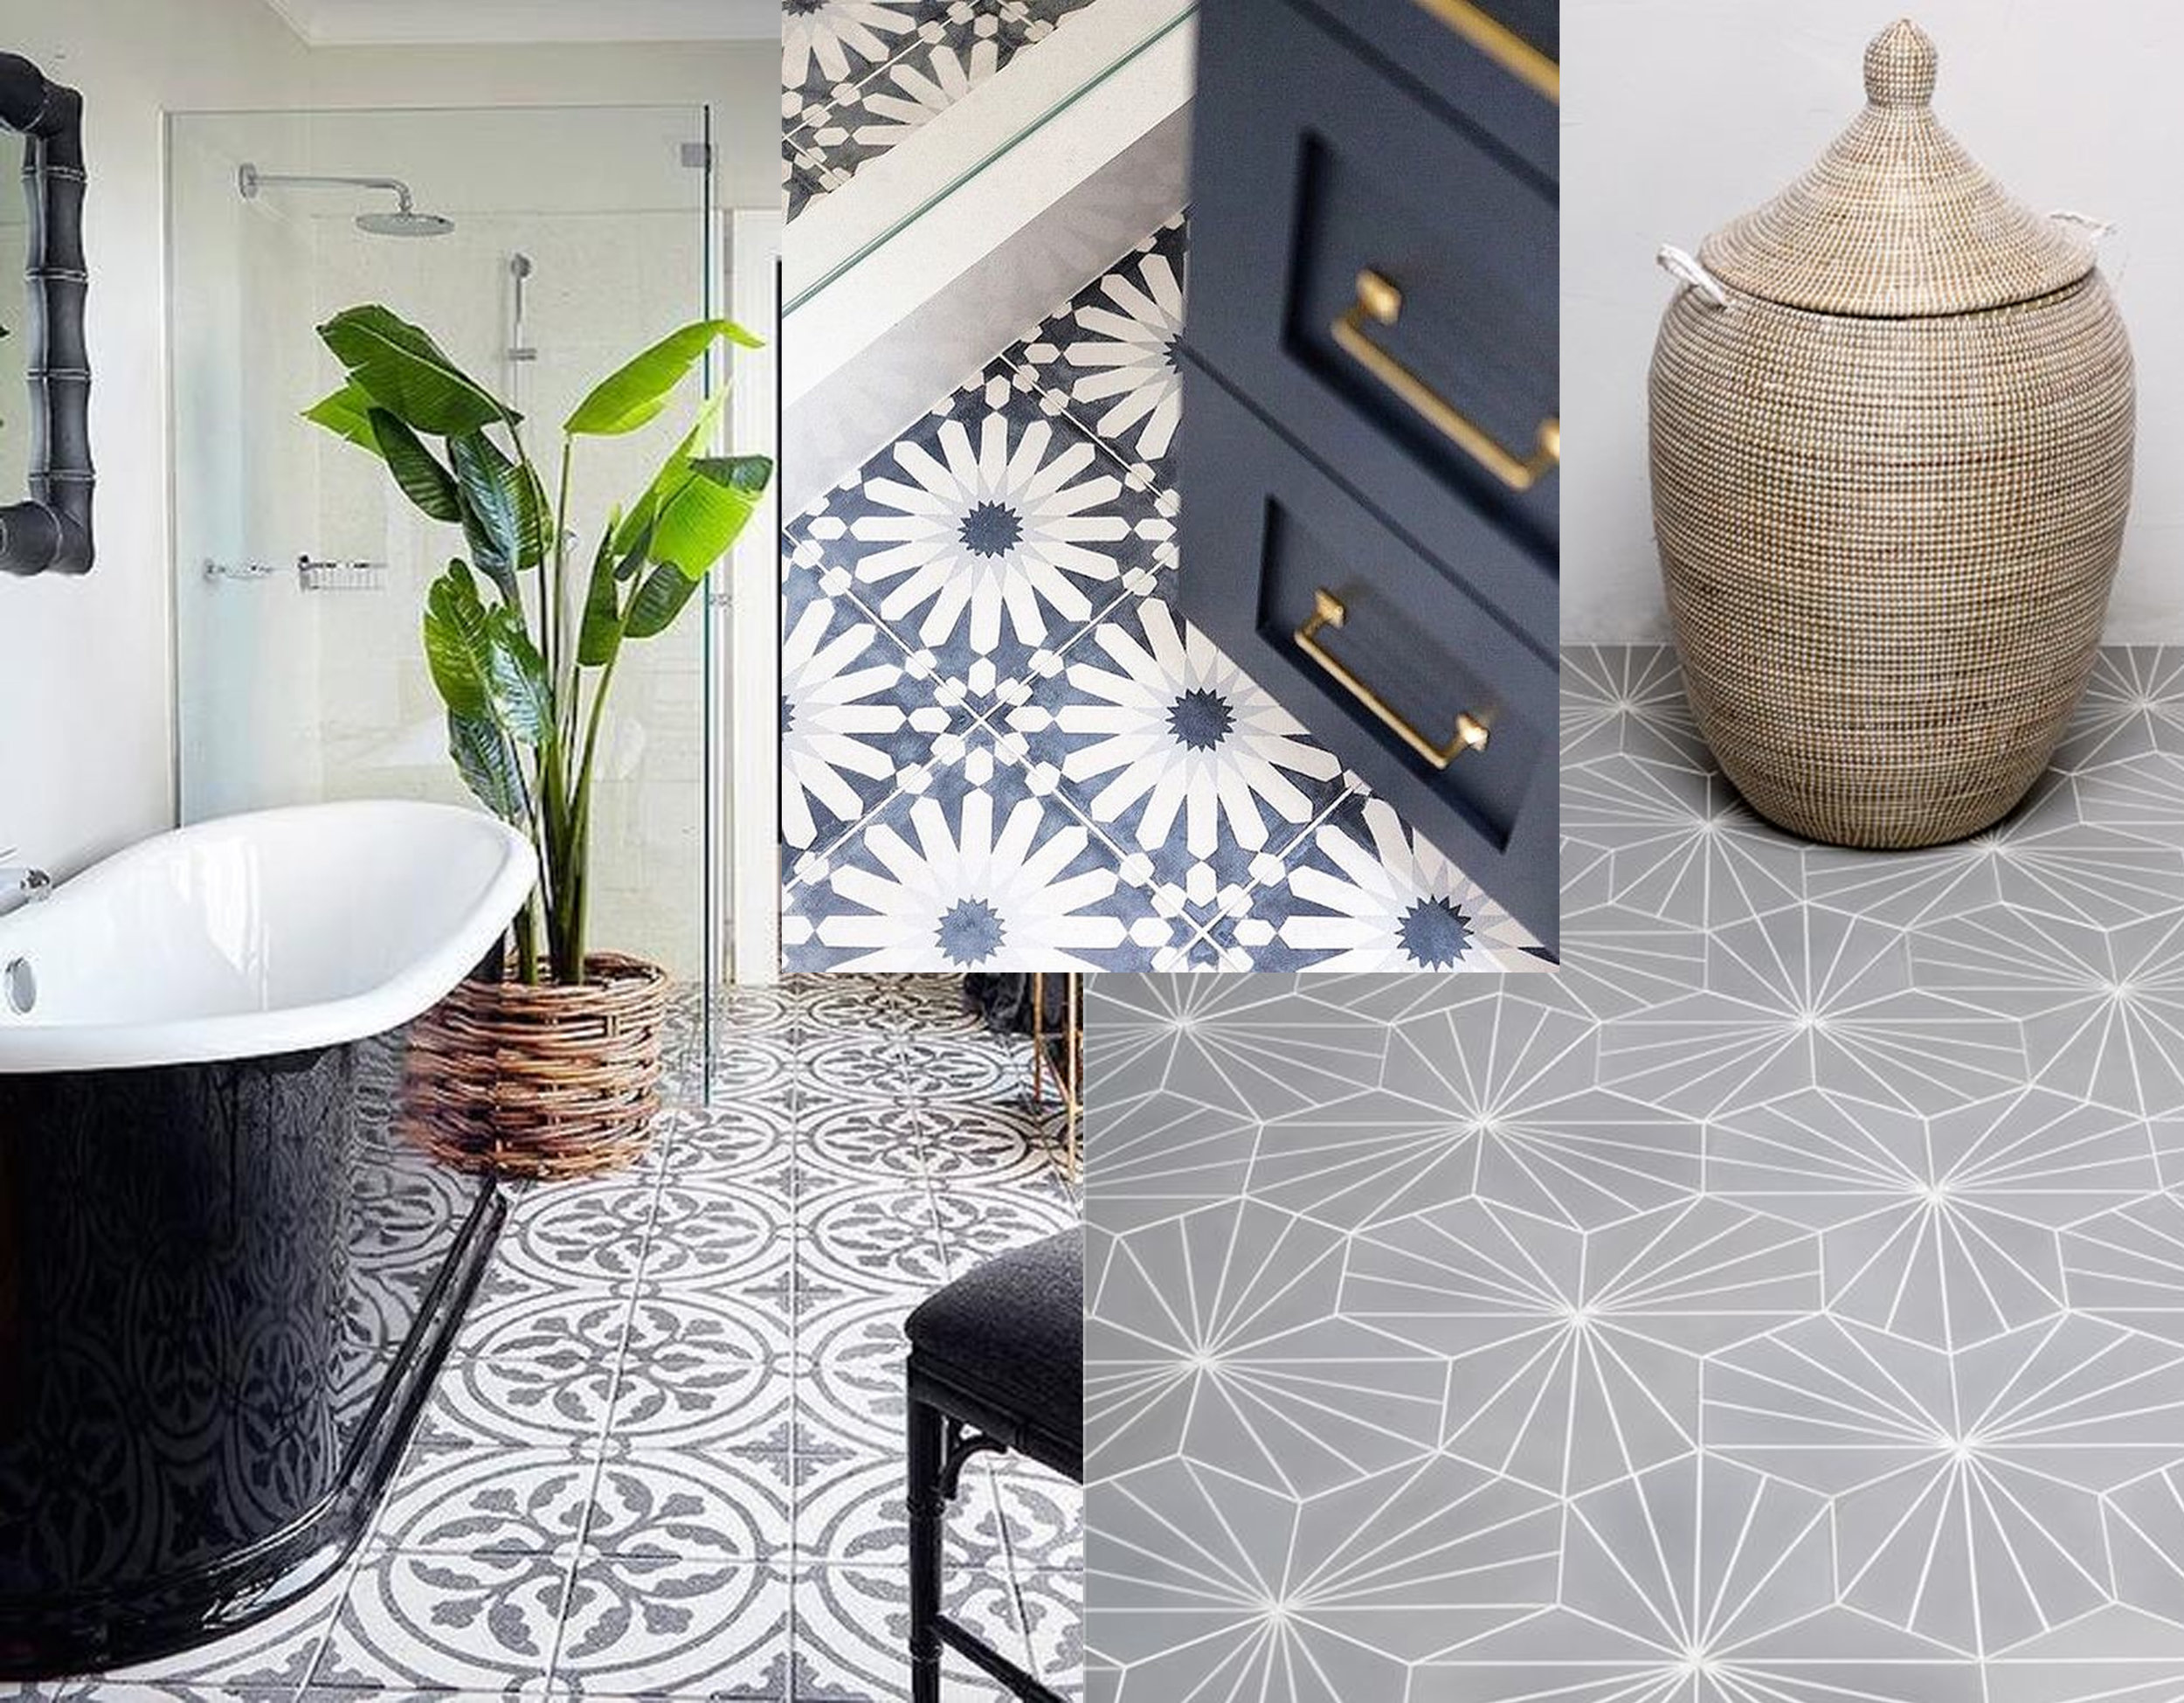 tiles bathroom via  Becki Owens  - Moroccan inspired tiles  Ann Sacks  - Dandelion tile  Claesson Koivisto Rune